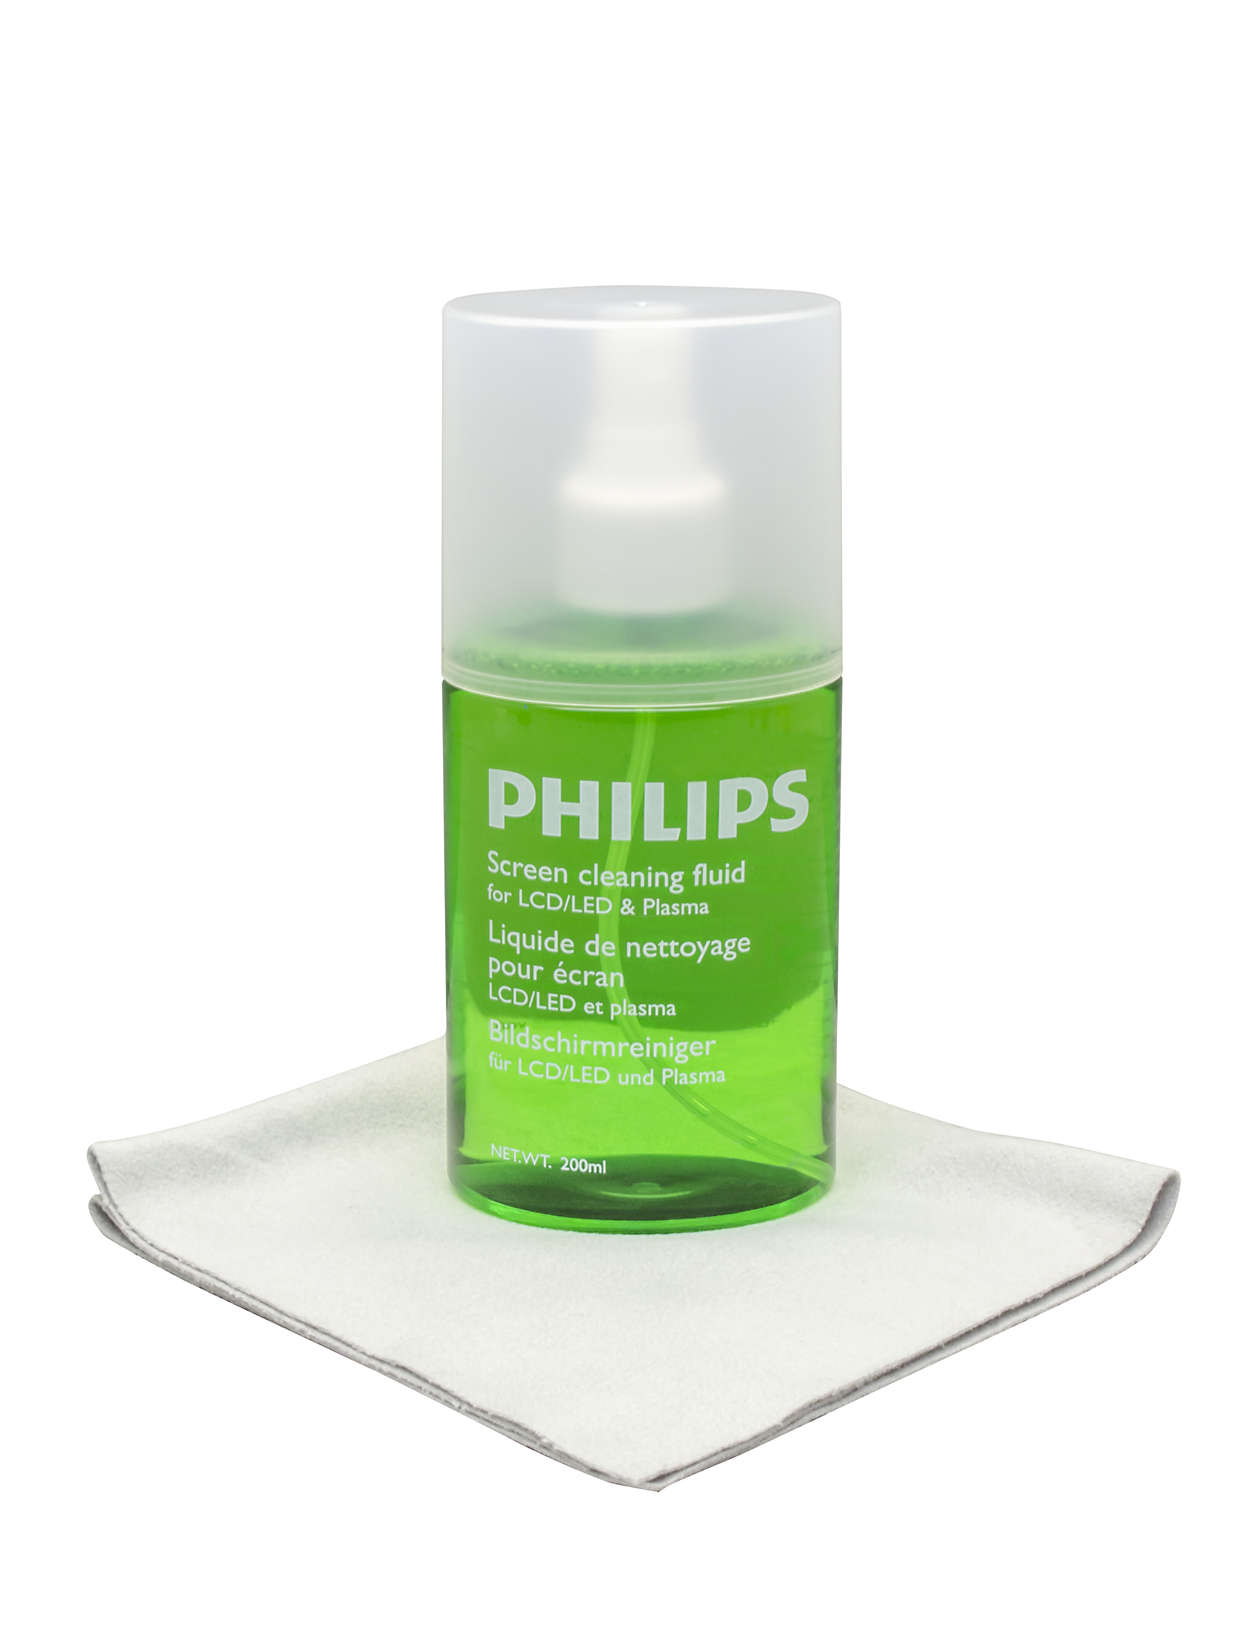 Screen cleaner svc1116g 10 philips How to clean flat screen tv home remedies